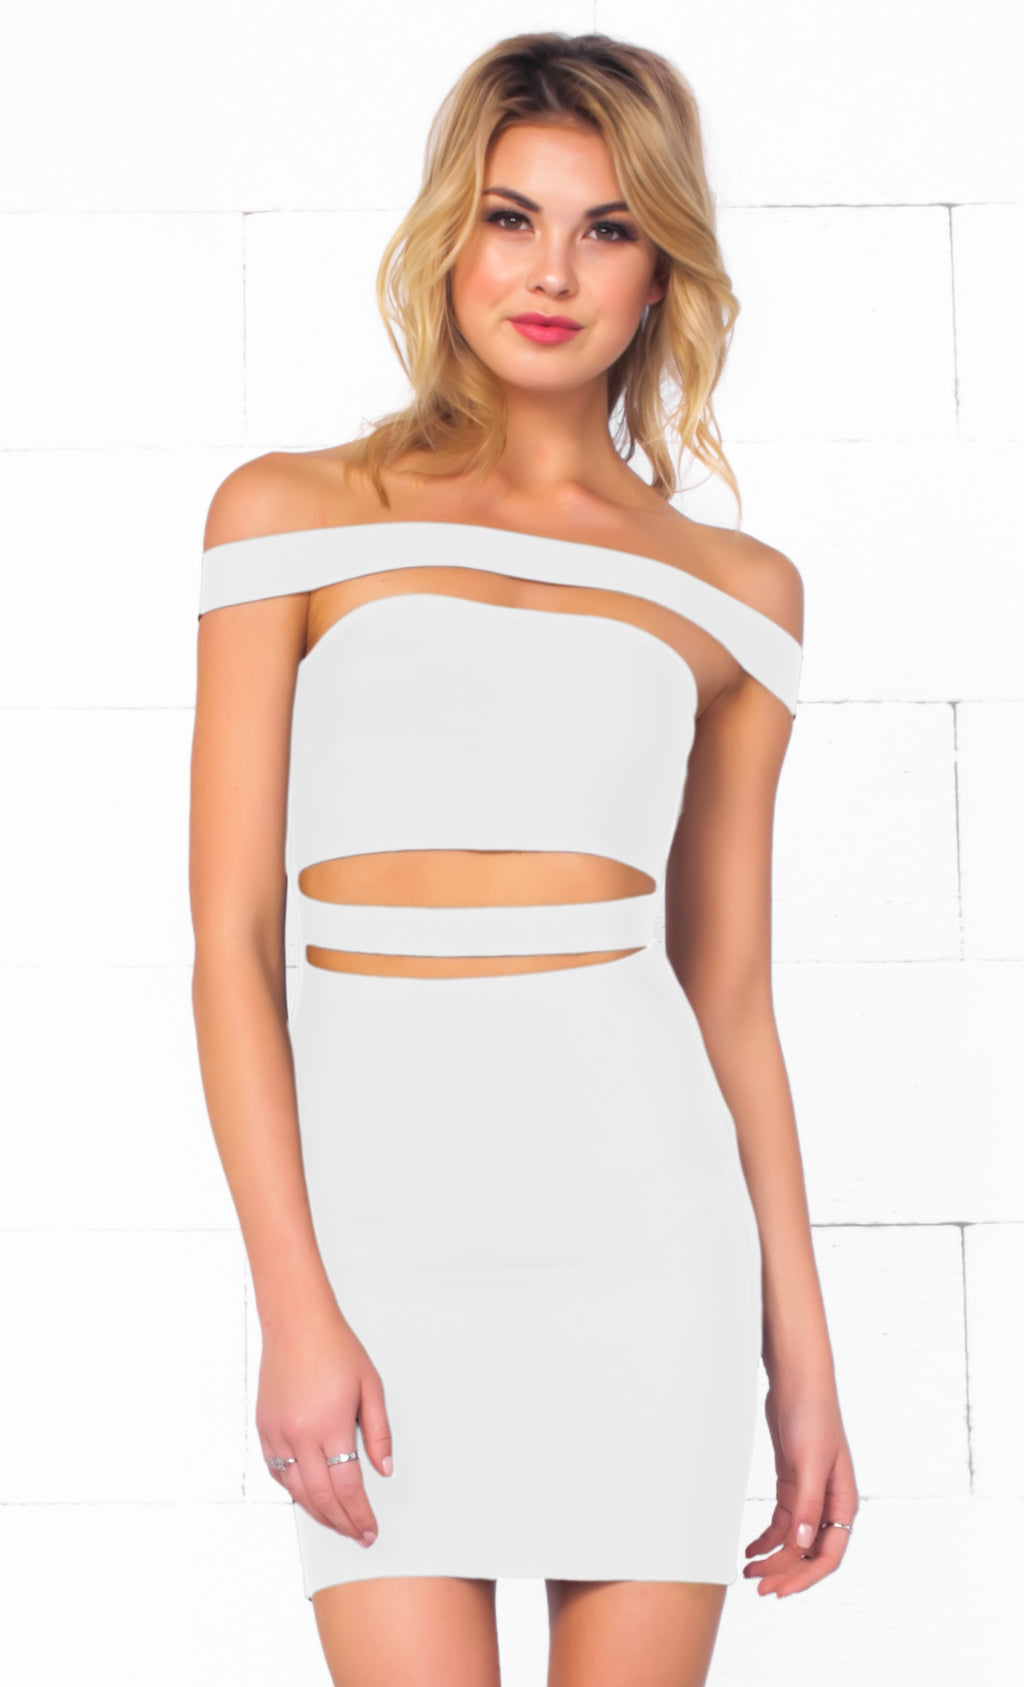 4387e6eef52 Indie XO It Girl White Strapless Cut Out Bandage Bodycon Mini Dress -  Inspired by Kylie